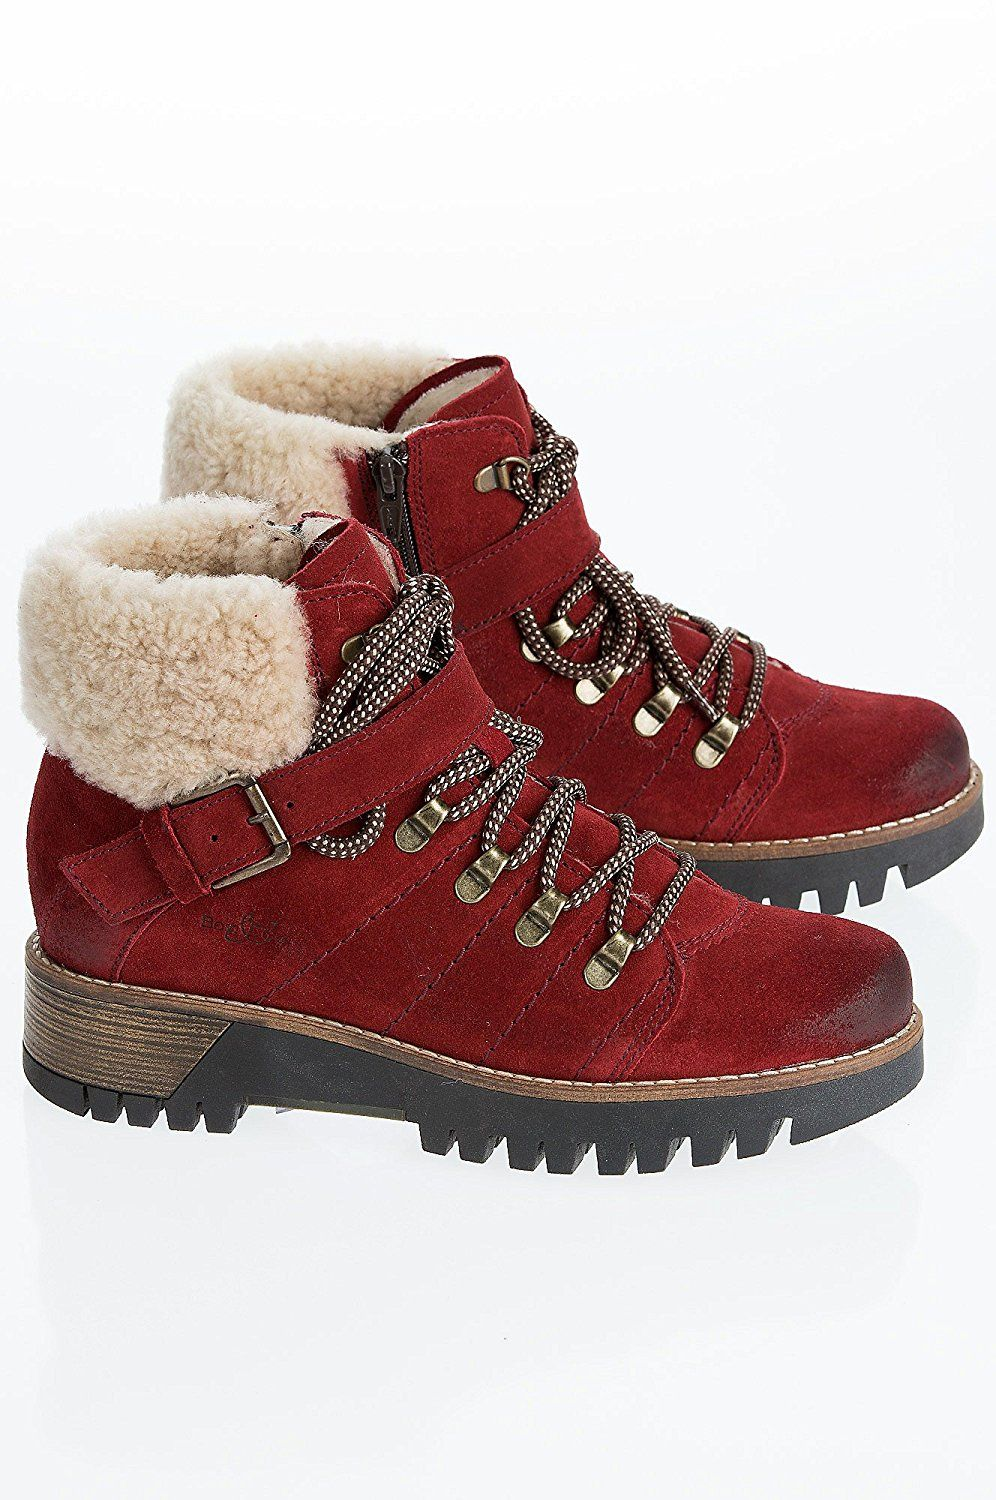 318435bd Amazon.com | Women's Overland Gail Wool-Lined Waterproof Leather Boots with  Shearling Cuffs, RED/NATURAL, Size EU39 | Snow Boots